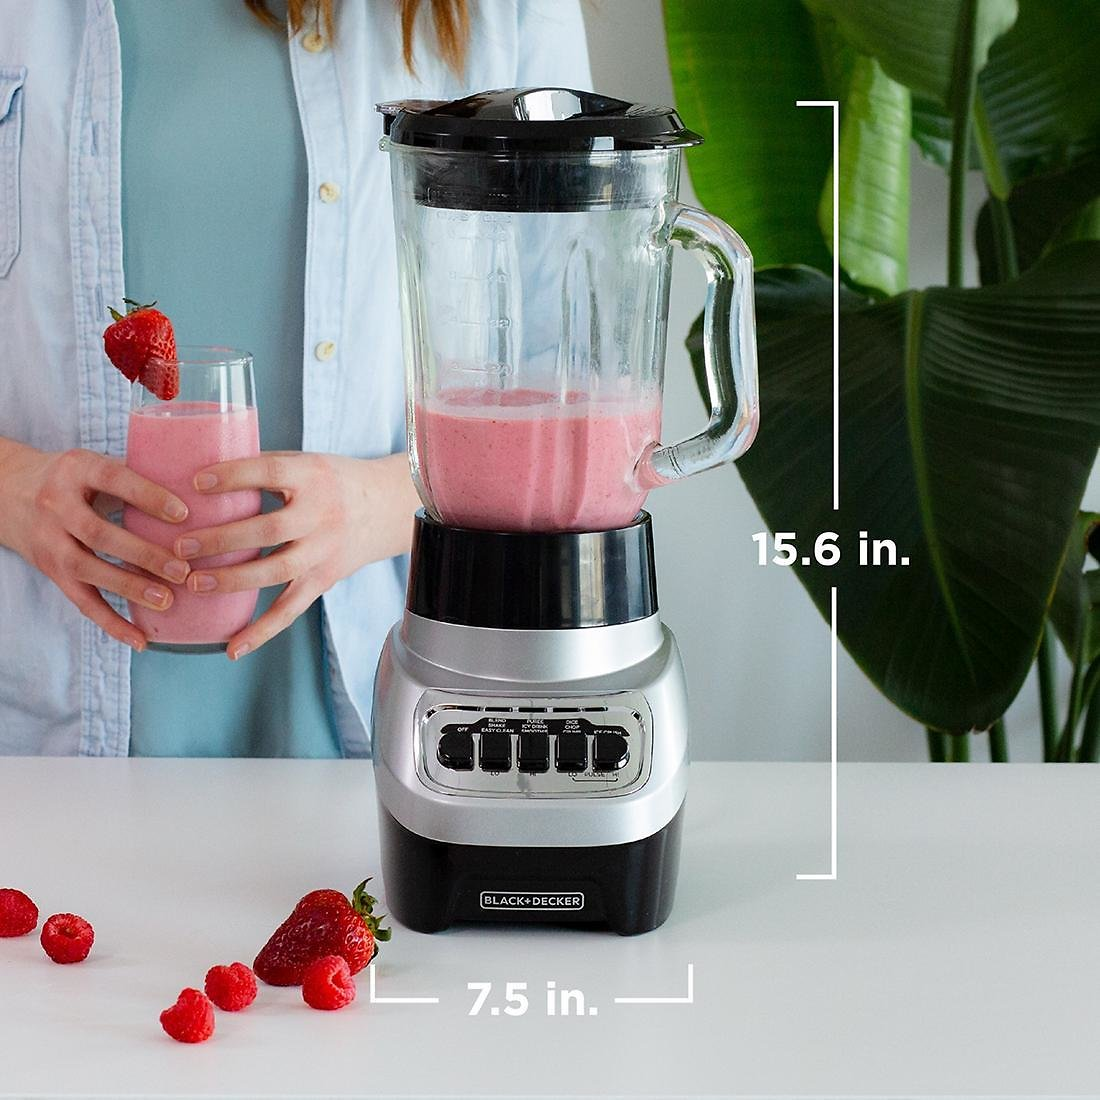 Black & Decker PowerCrush Multi-Function Blender